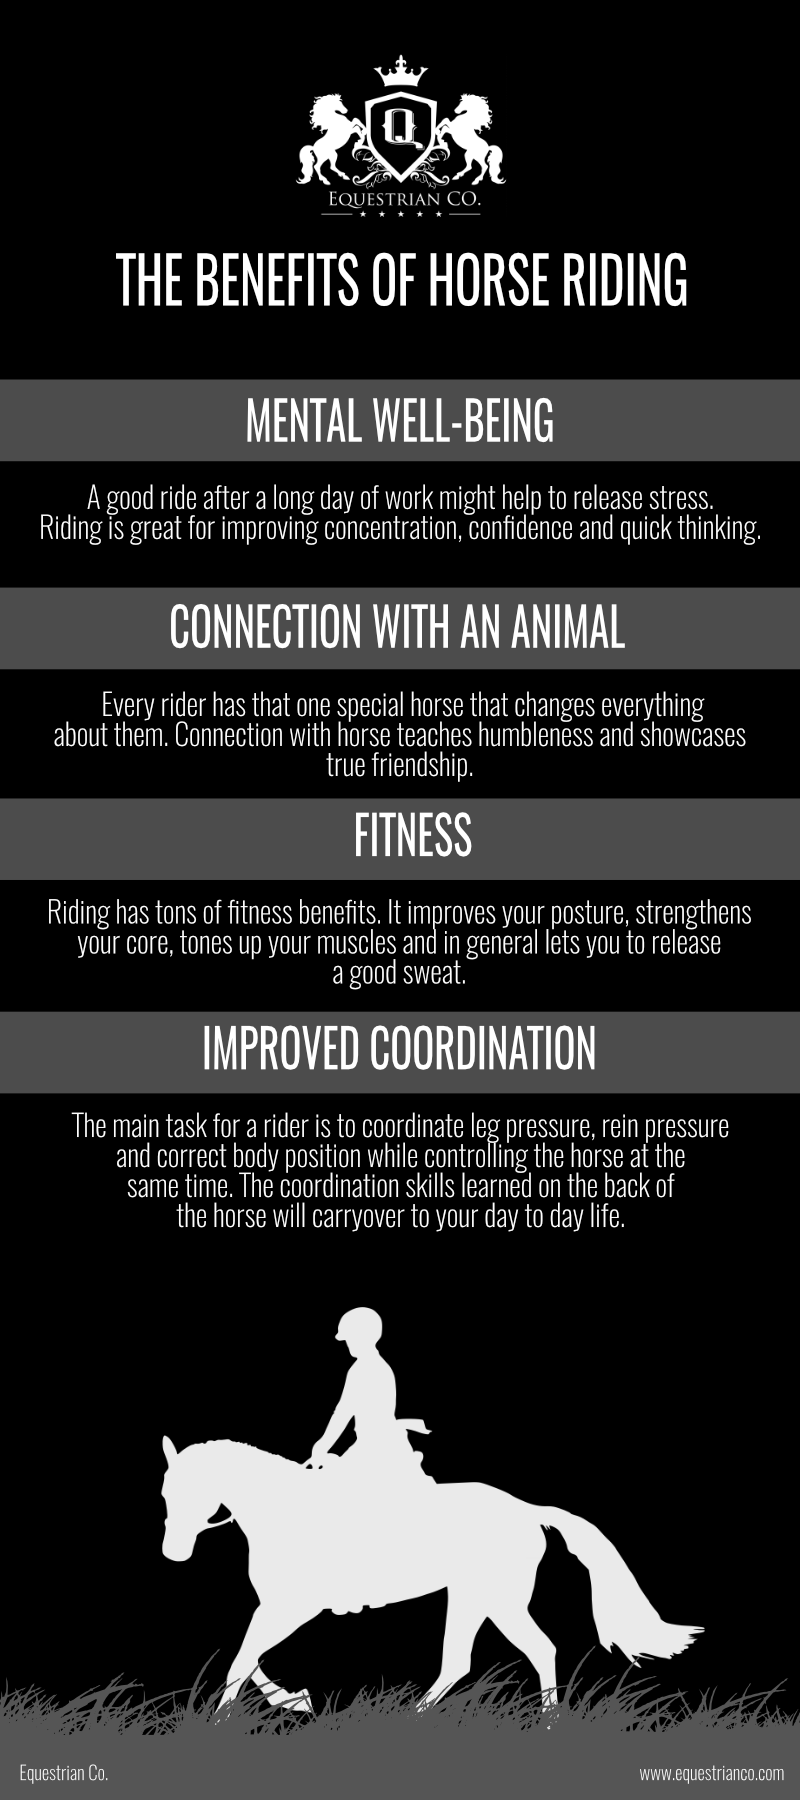 The Benefits of Horse Riding